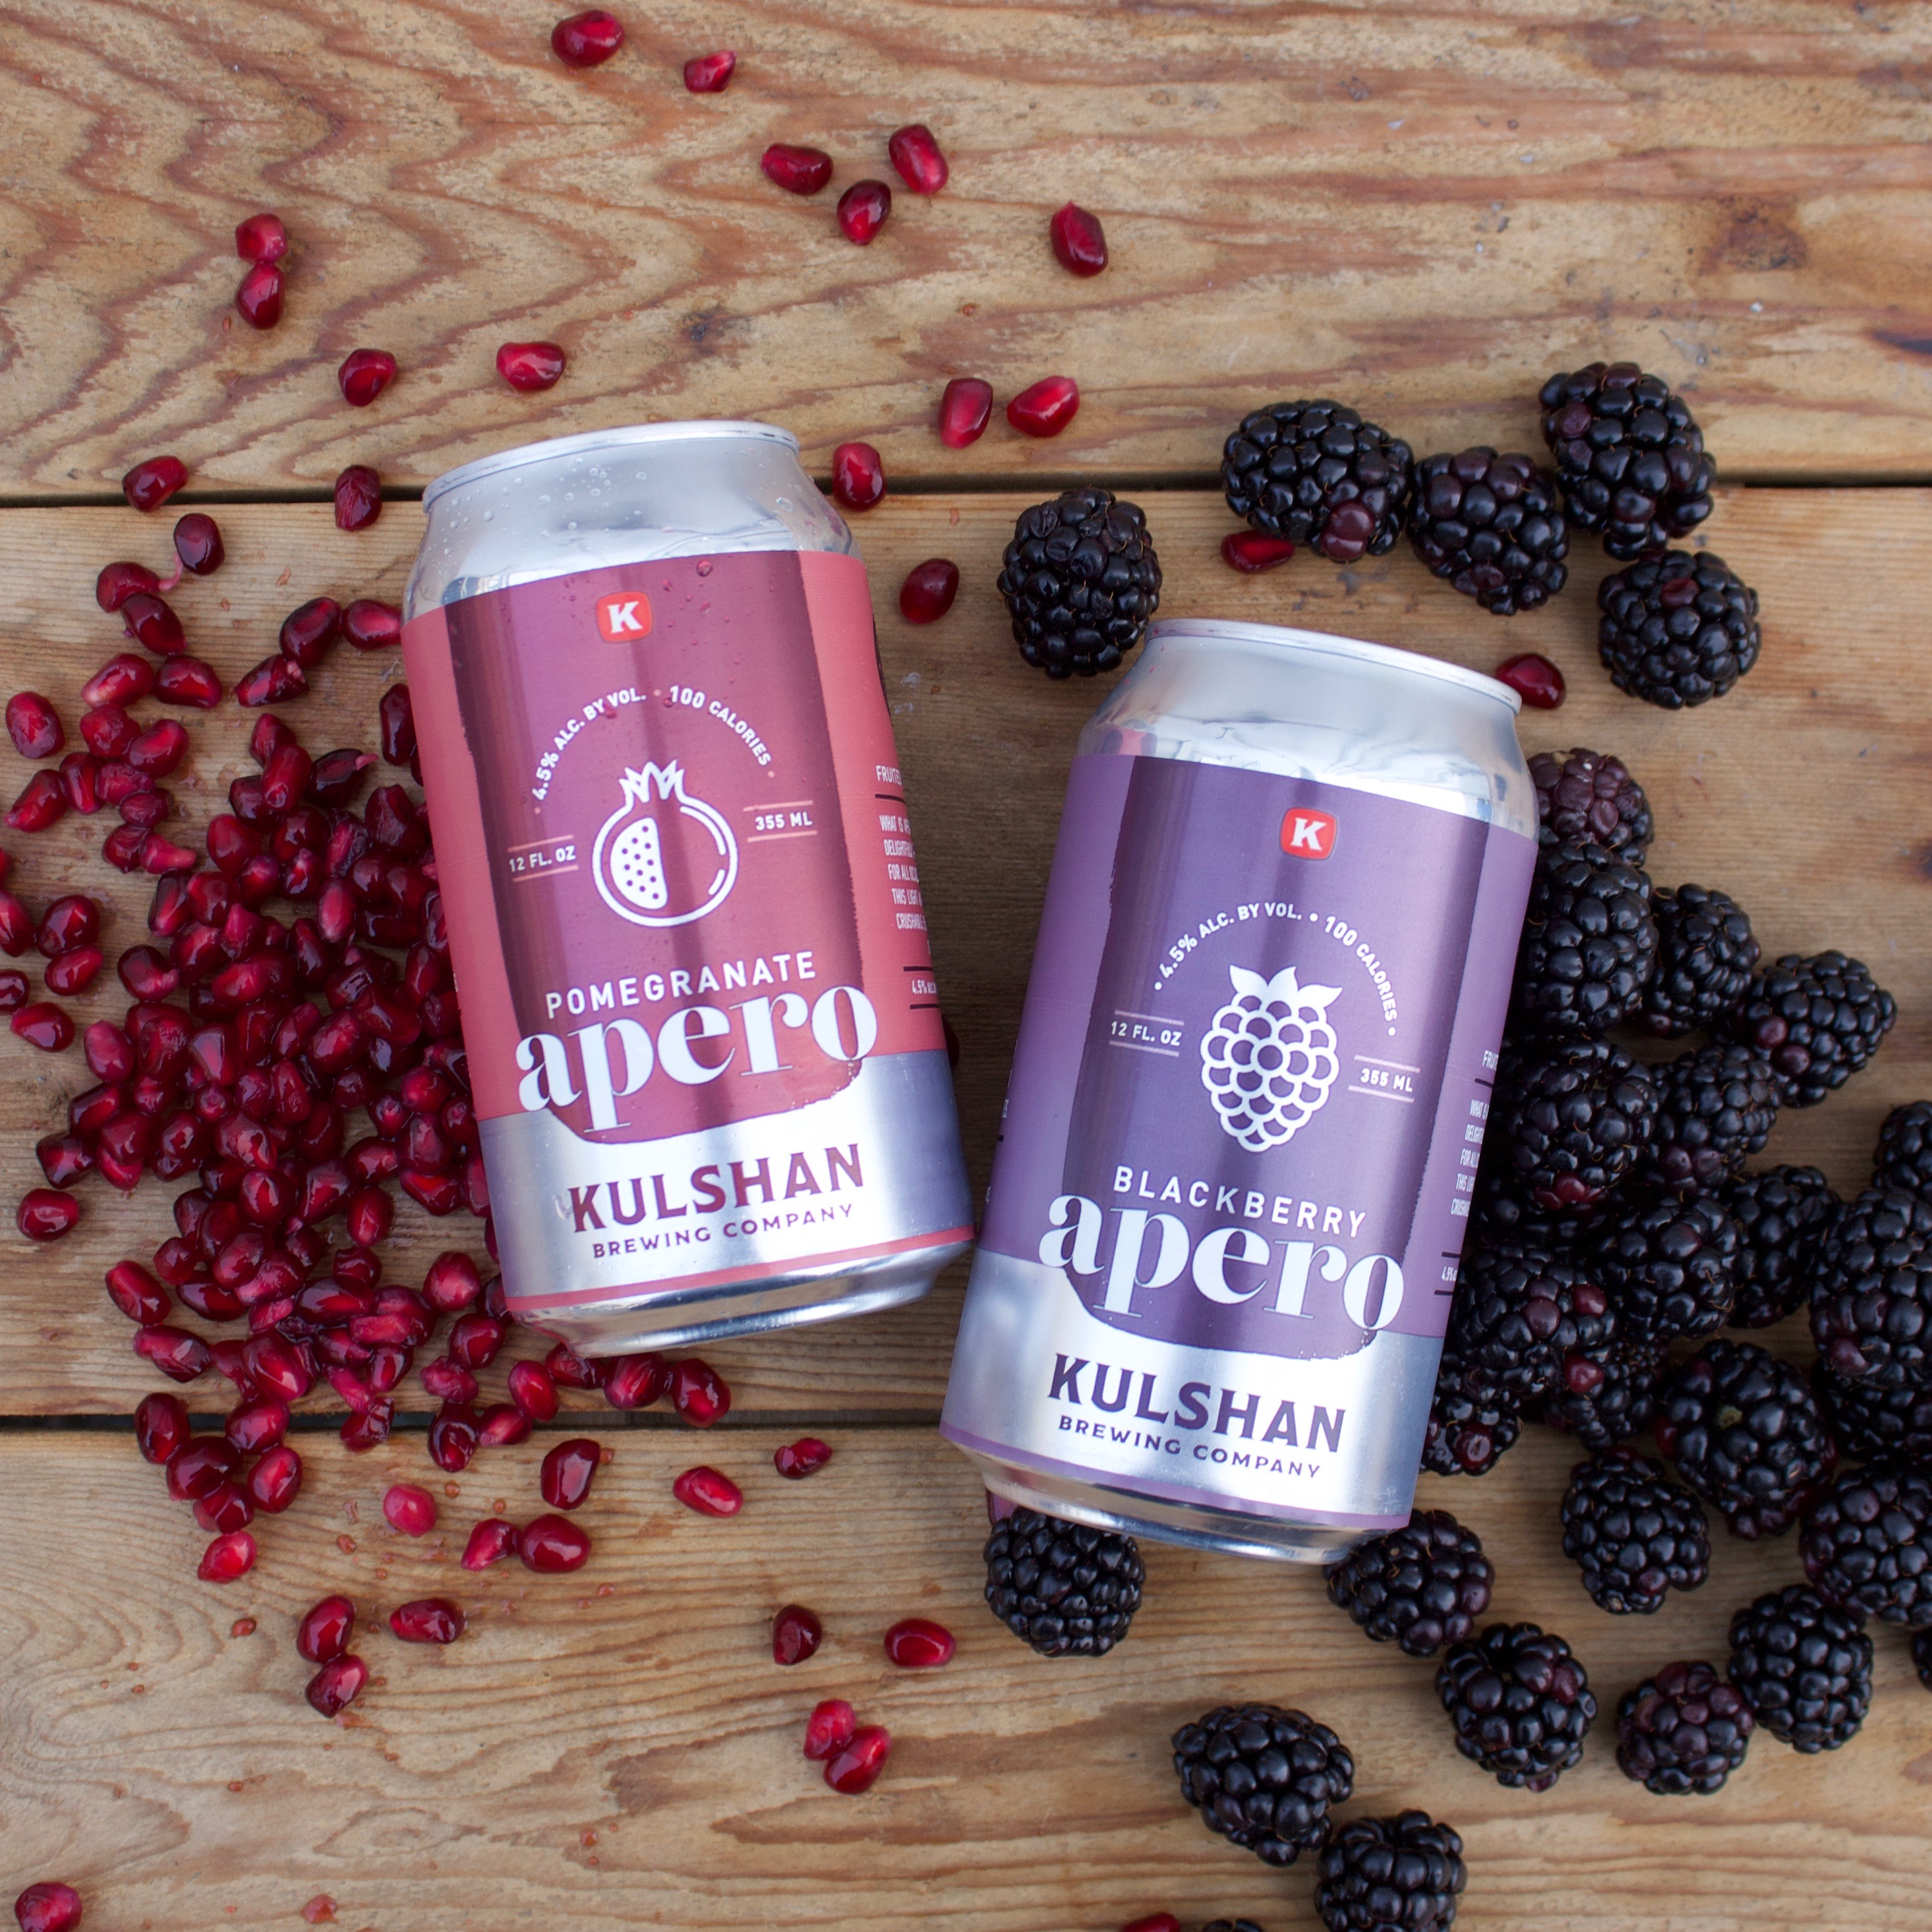 Cans of Apero beer from Kulshan Brewing Company, with pomegranate seeds and blackberries behind them.